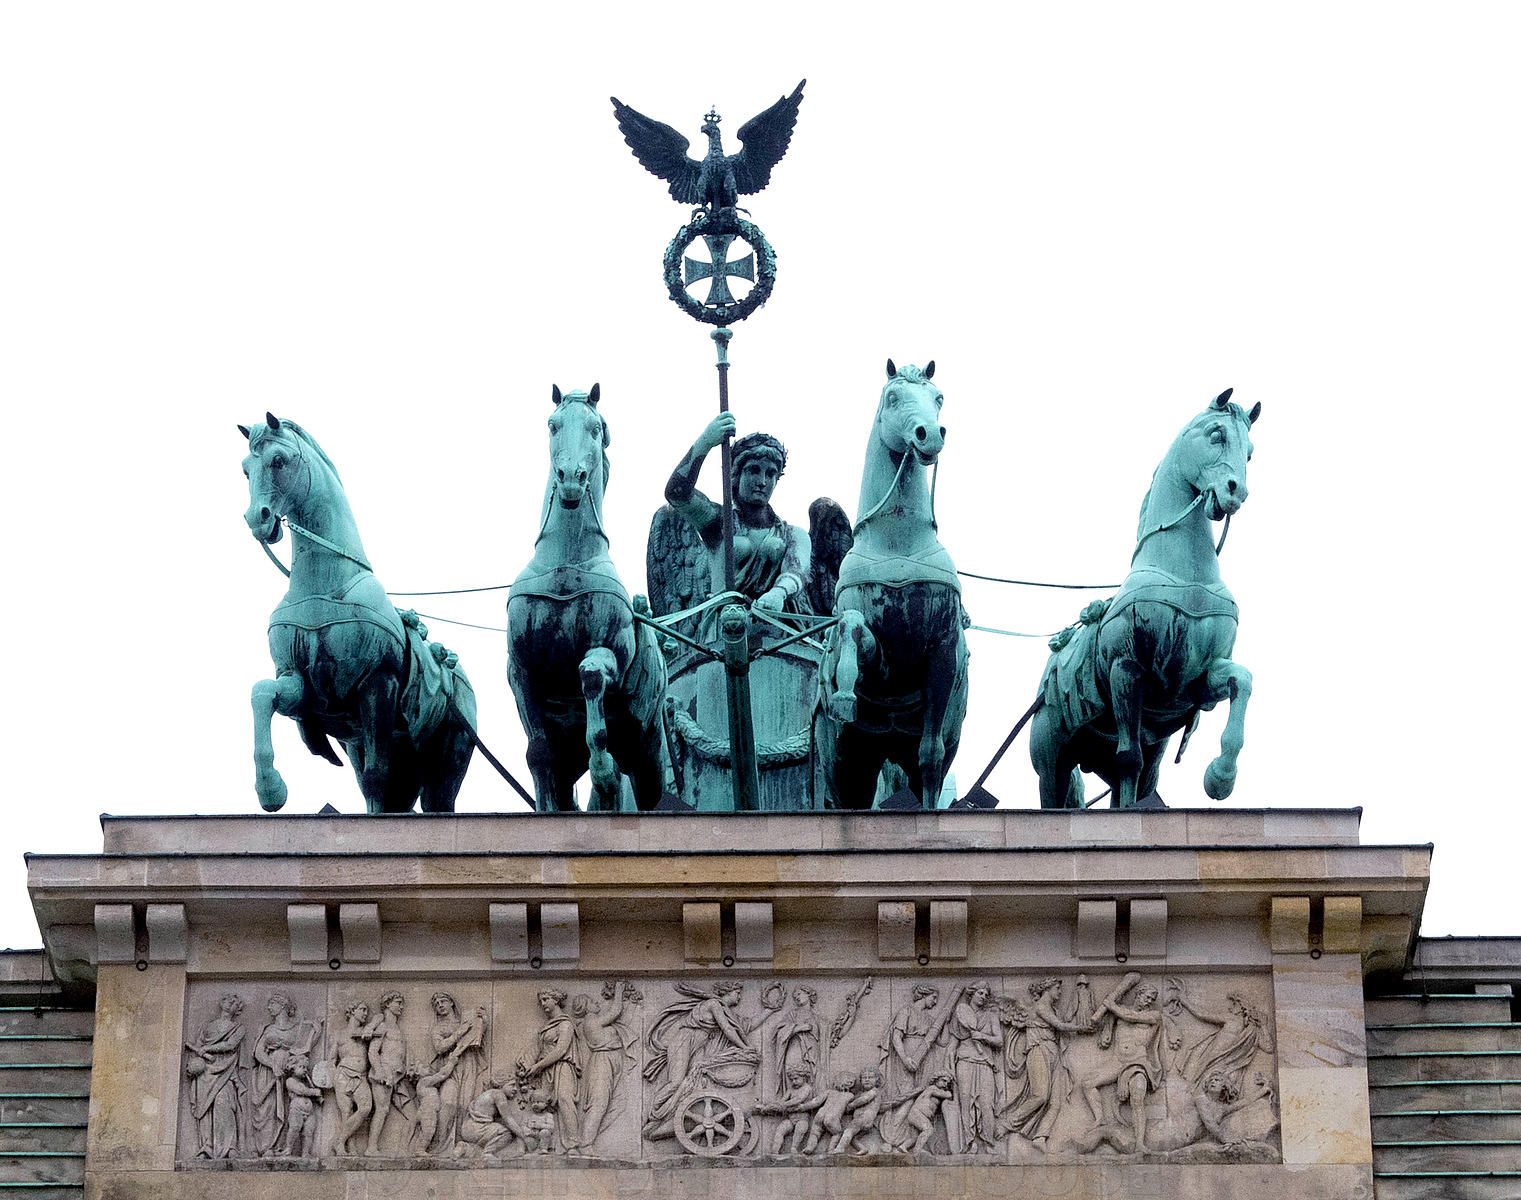 Quadriga, a chariot drawn by four horses driven by Victoria, the Roman goddess of victory atop of The Brandenburg Gate